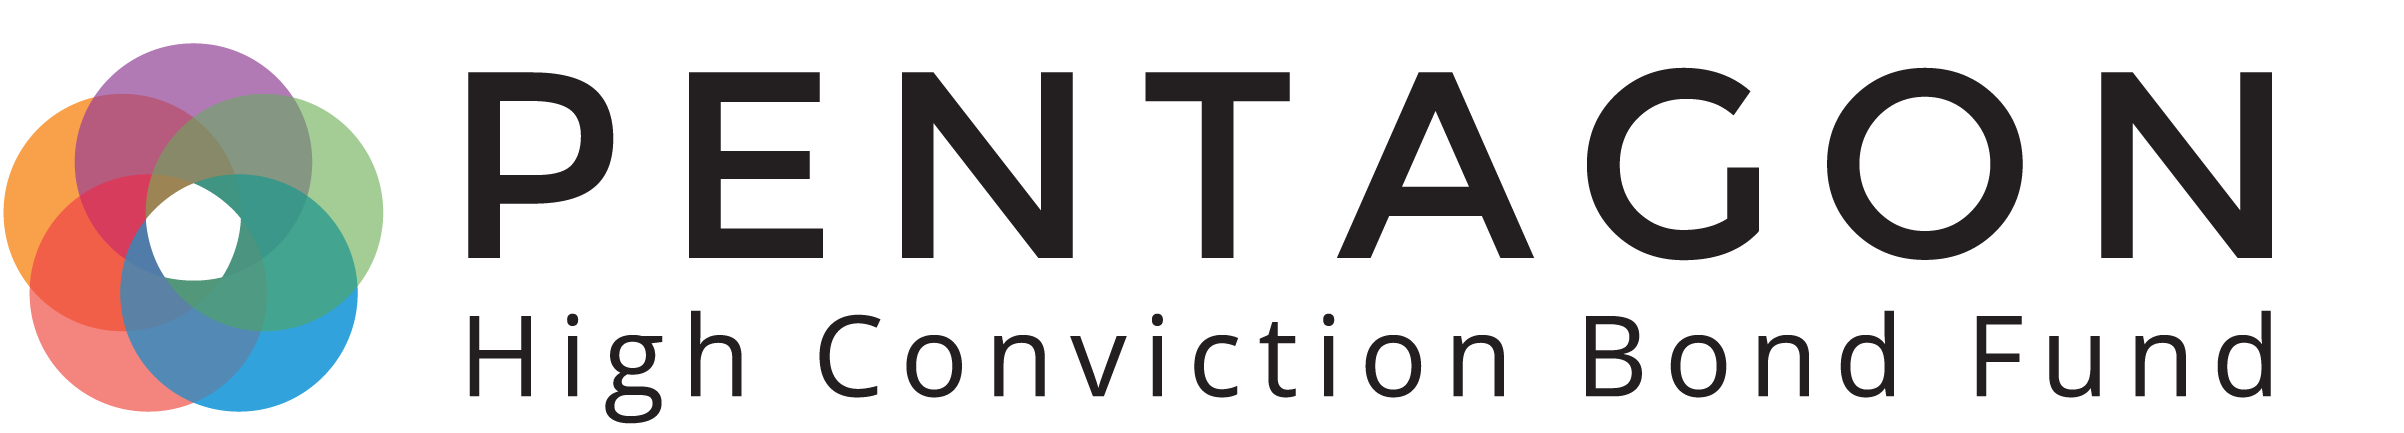 Pentagon High Conviction Bond Fund logo